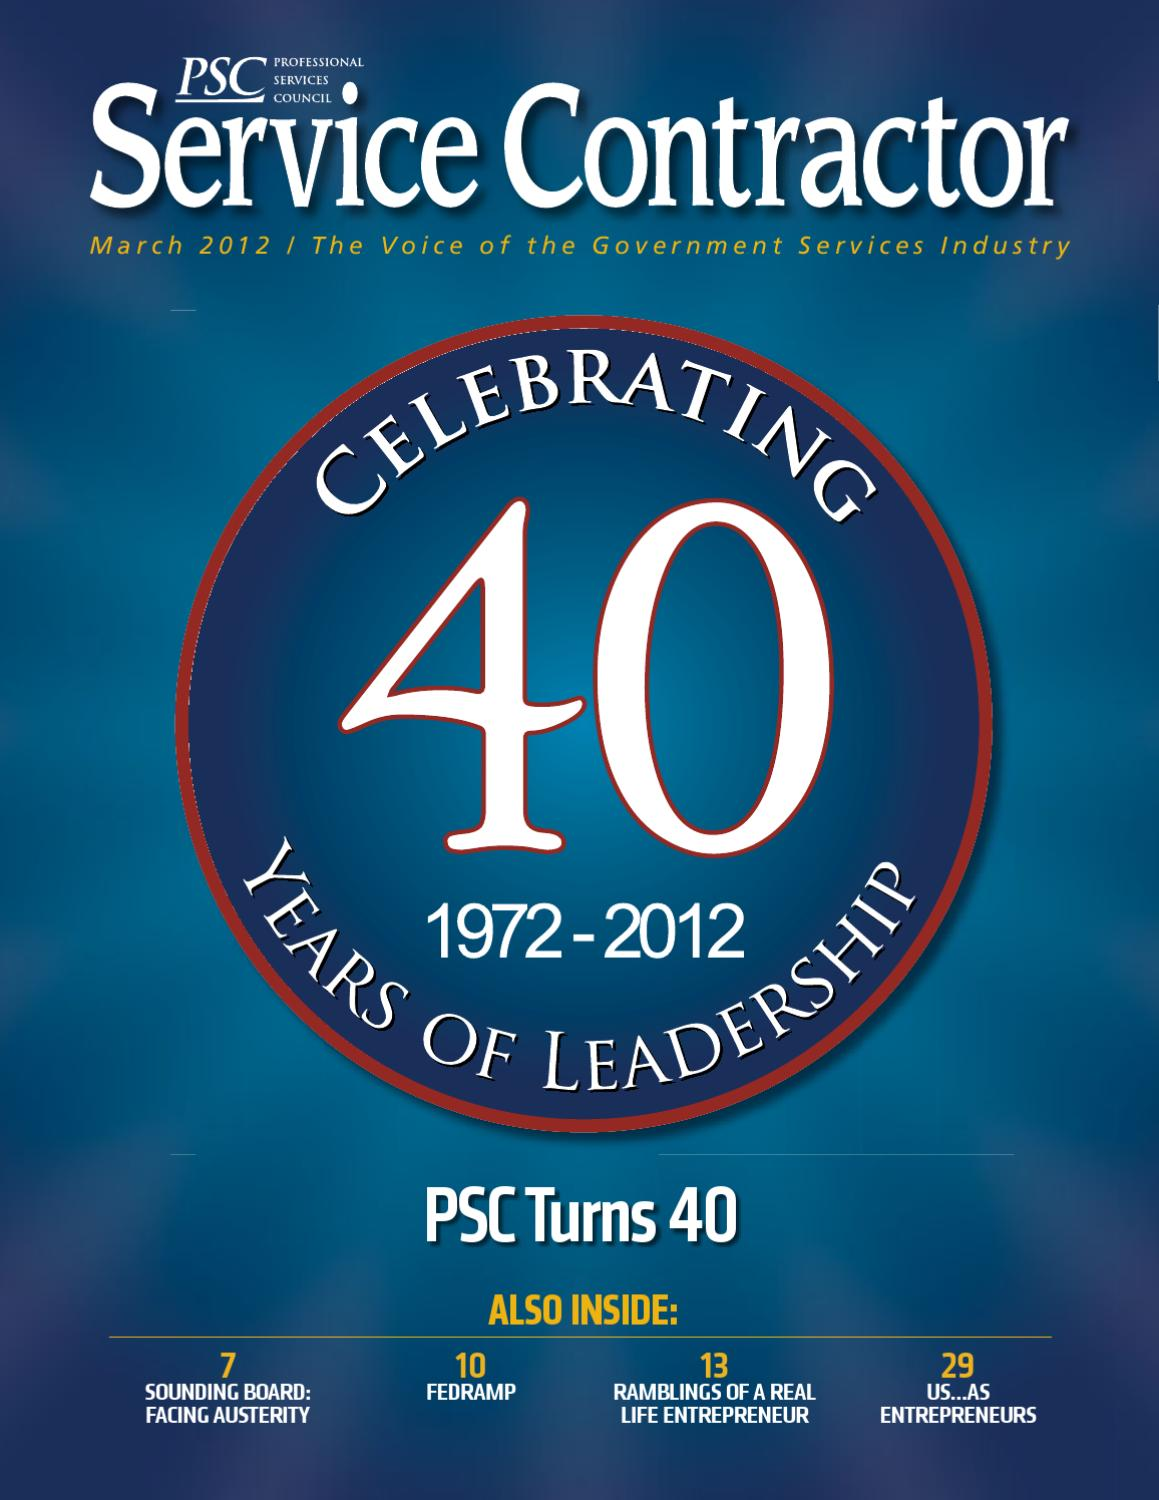 Service Contractor Magazine - March 2012 by Professional Services